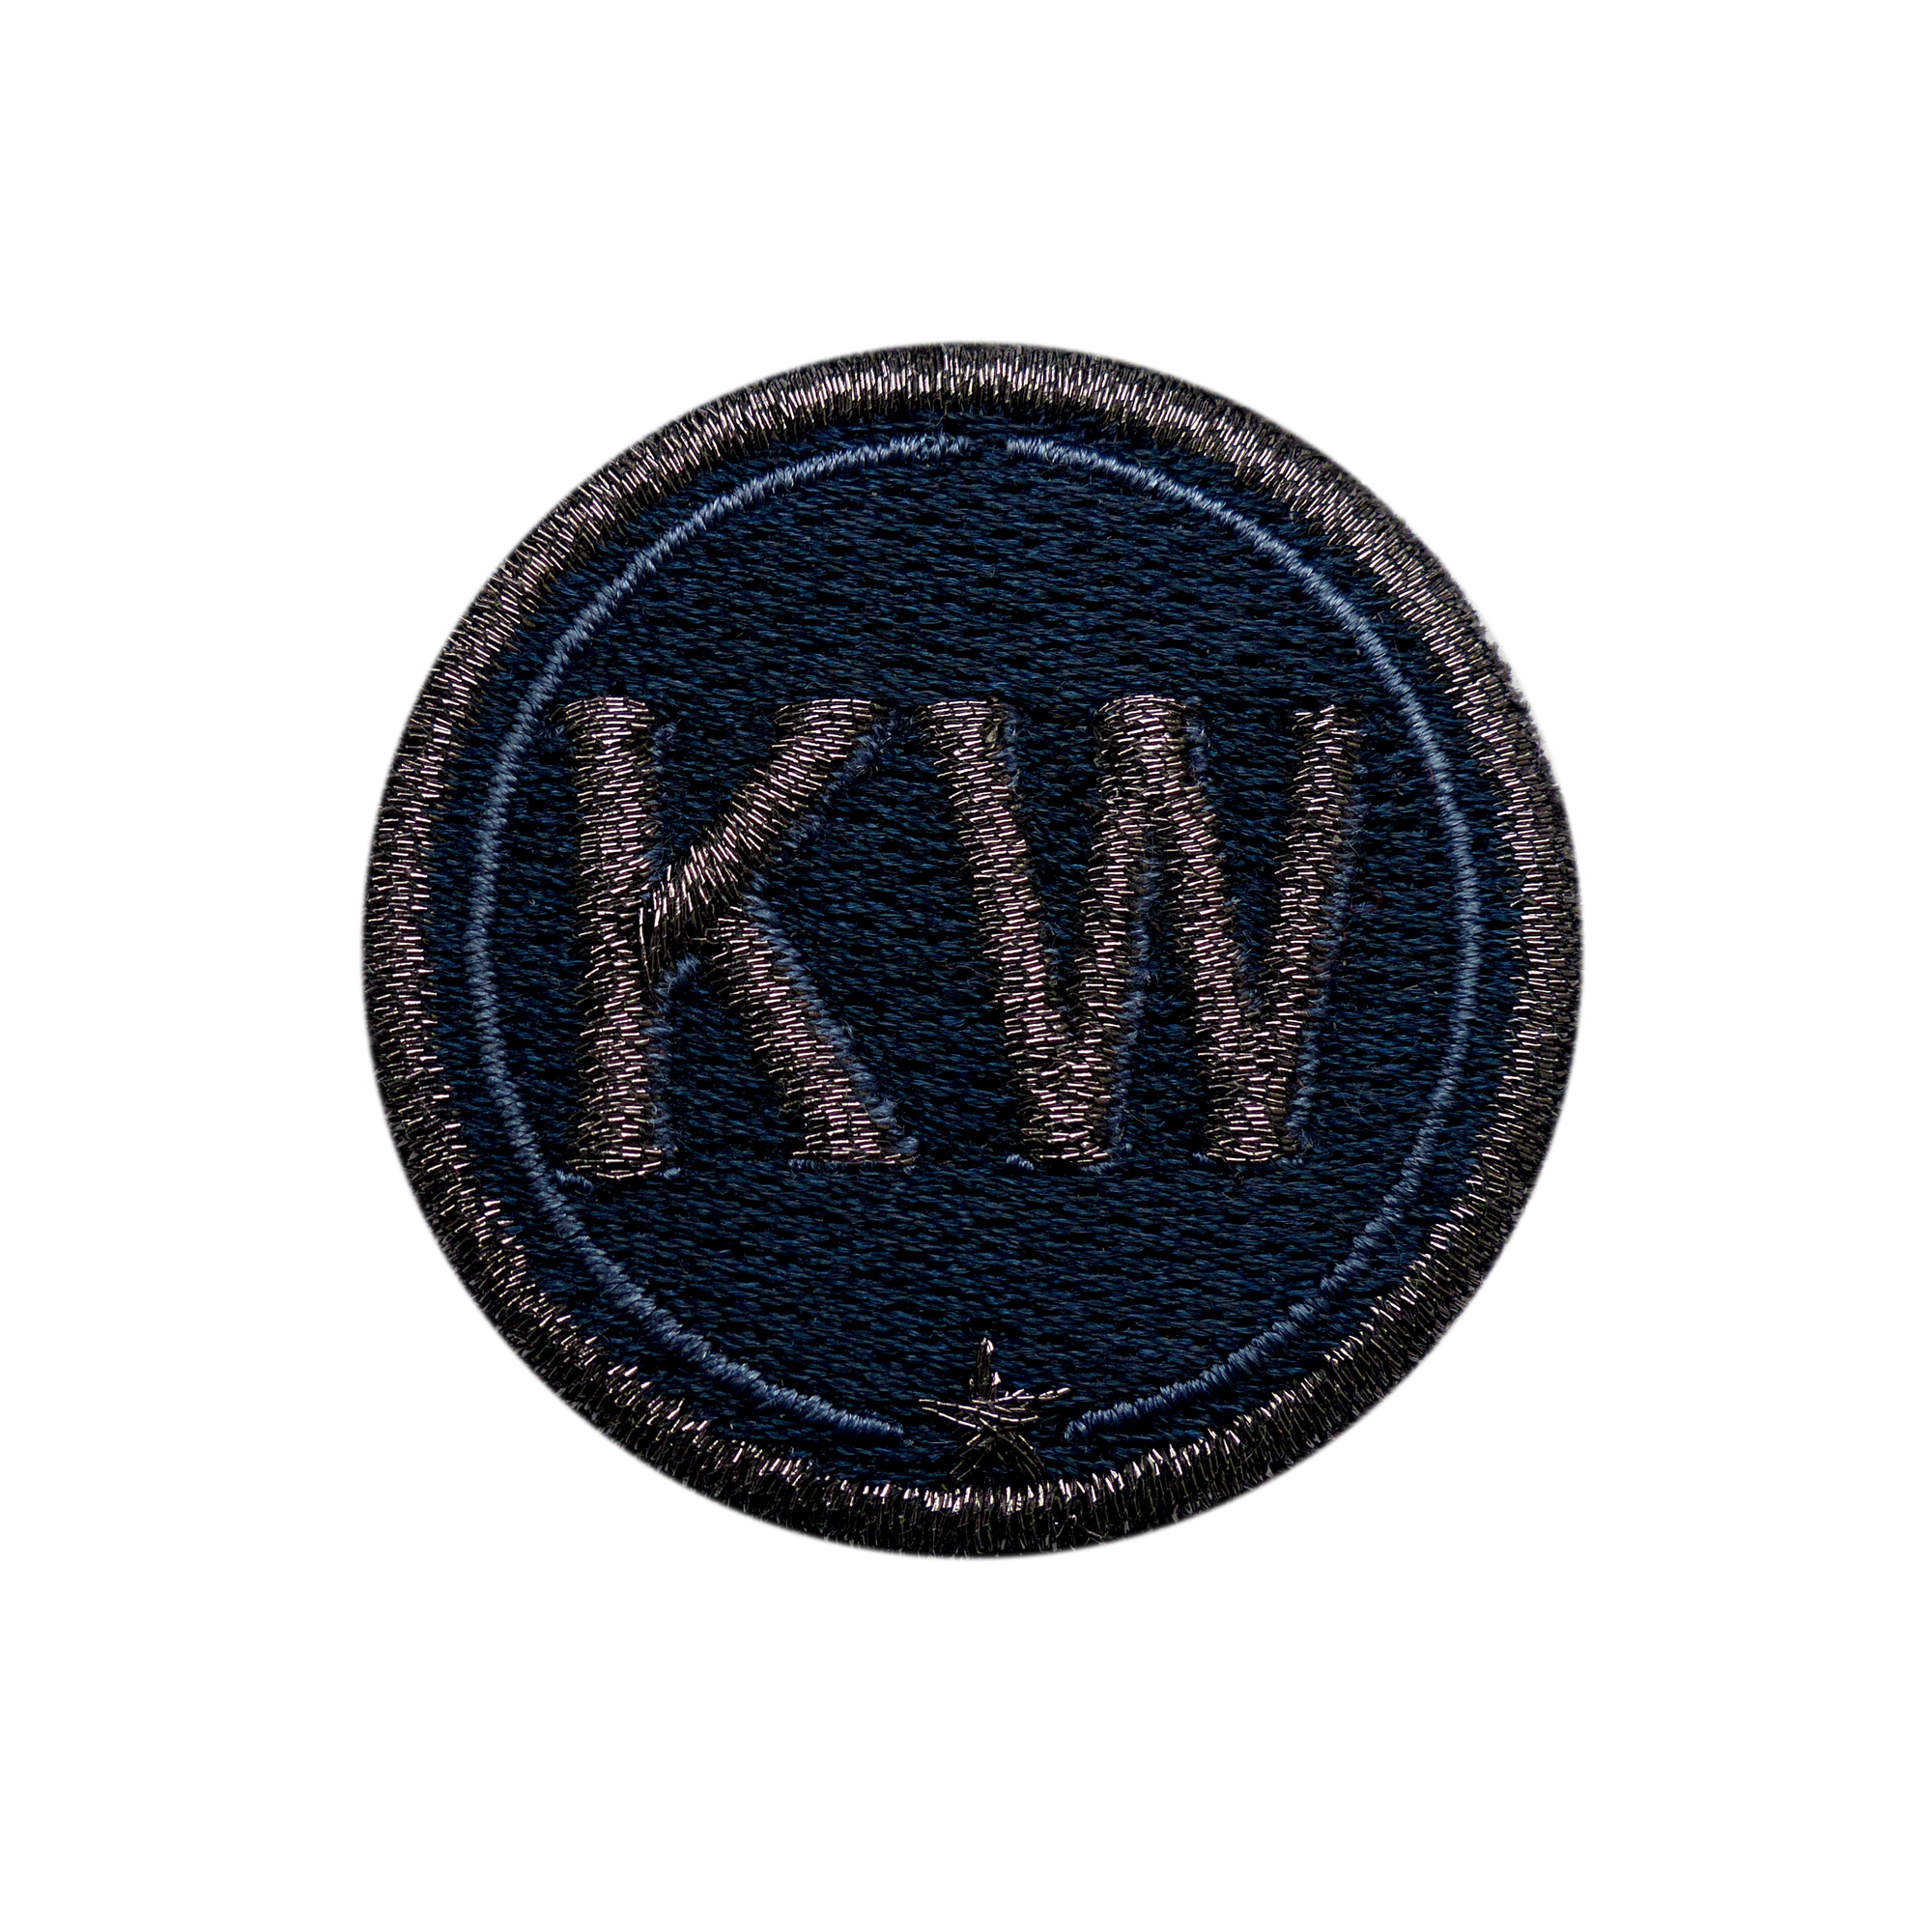 Patch INITIALS · 4cm · anthracite metallic/navy· customizable